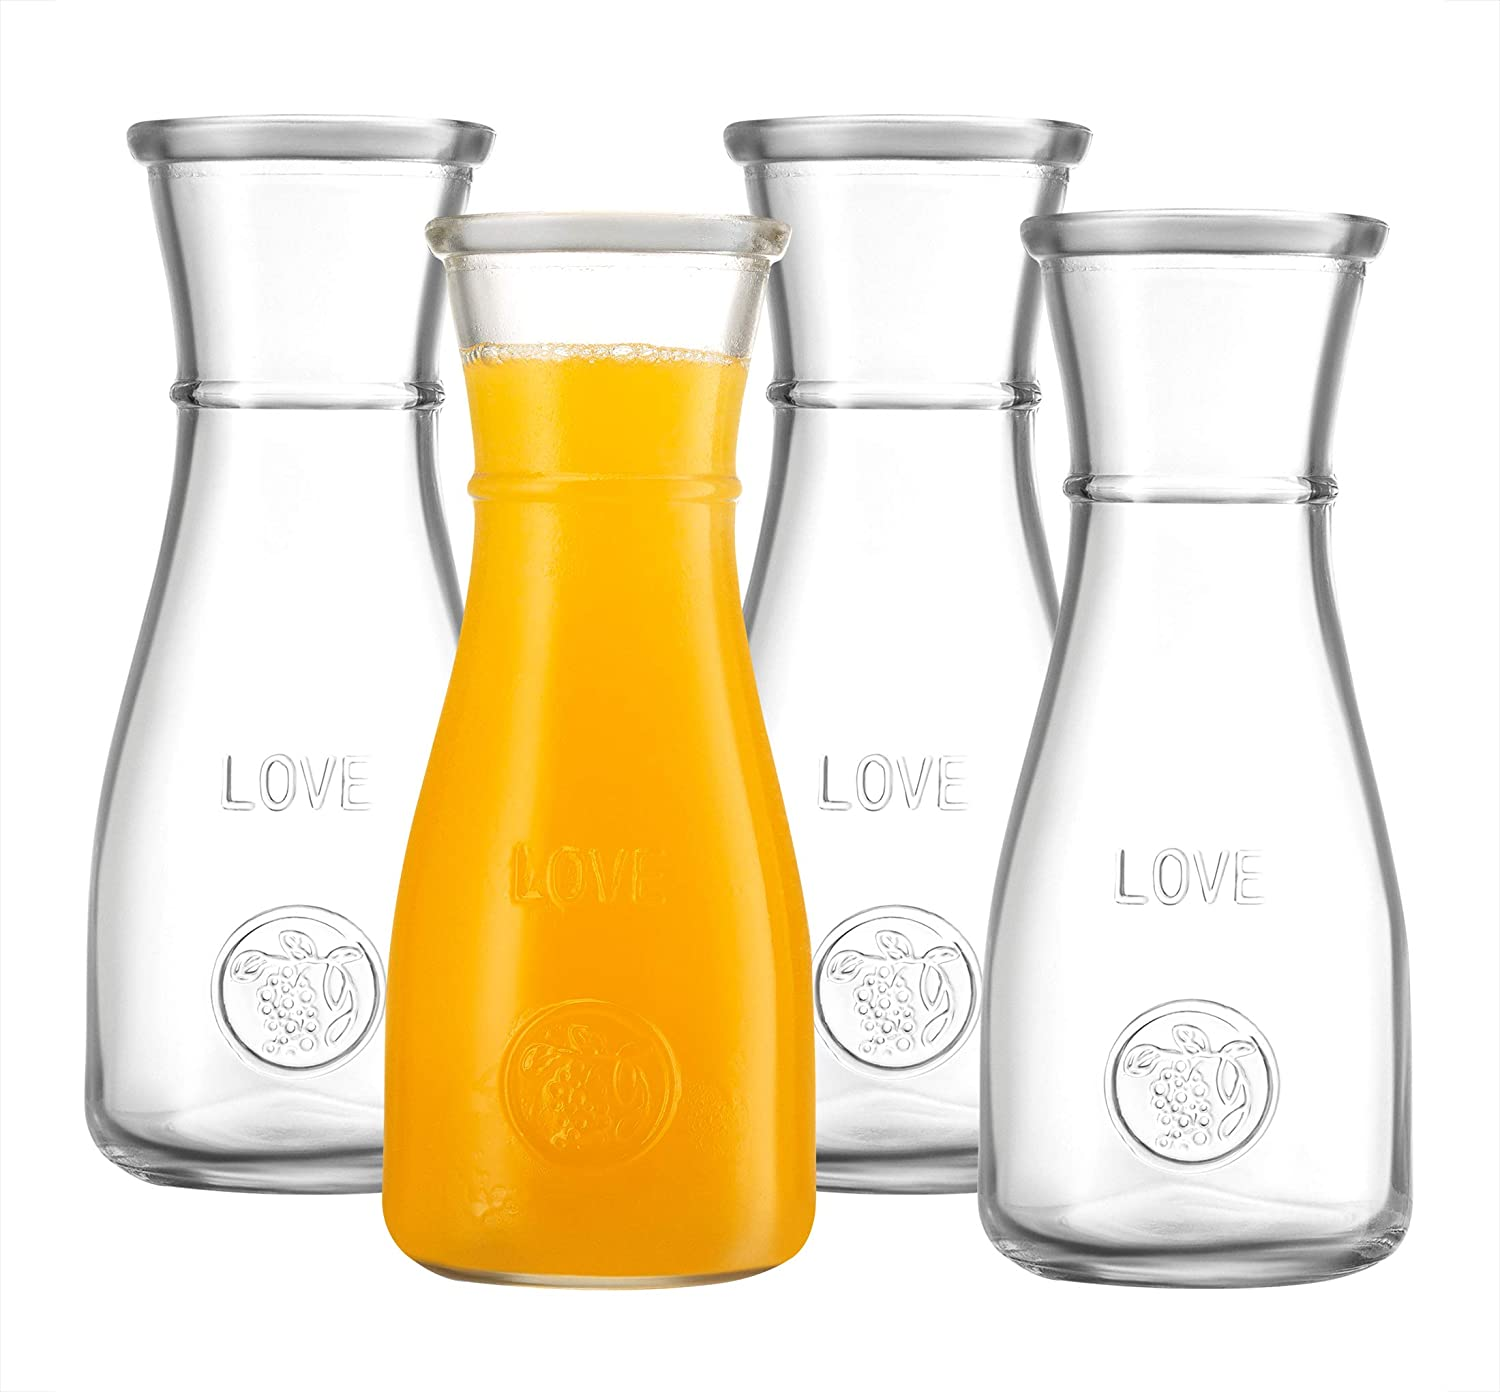 500 ml Glass Carafe - 4 Pack - The LOVE Drink Pitcher and Elegant Wine Decanter, Narrow Neck For Easy Grip, Wide Mouth for Classic Pouring - Great for Parties and Events – by Kitchen Lux